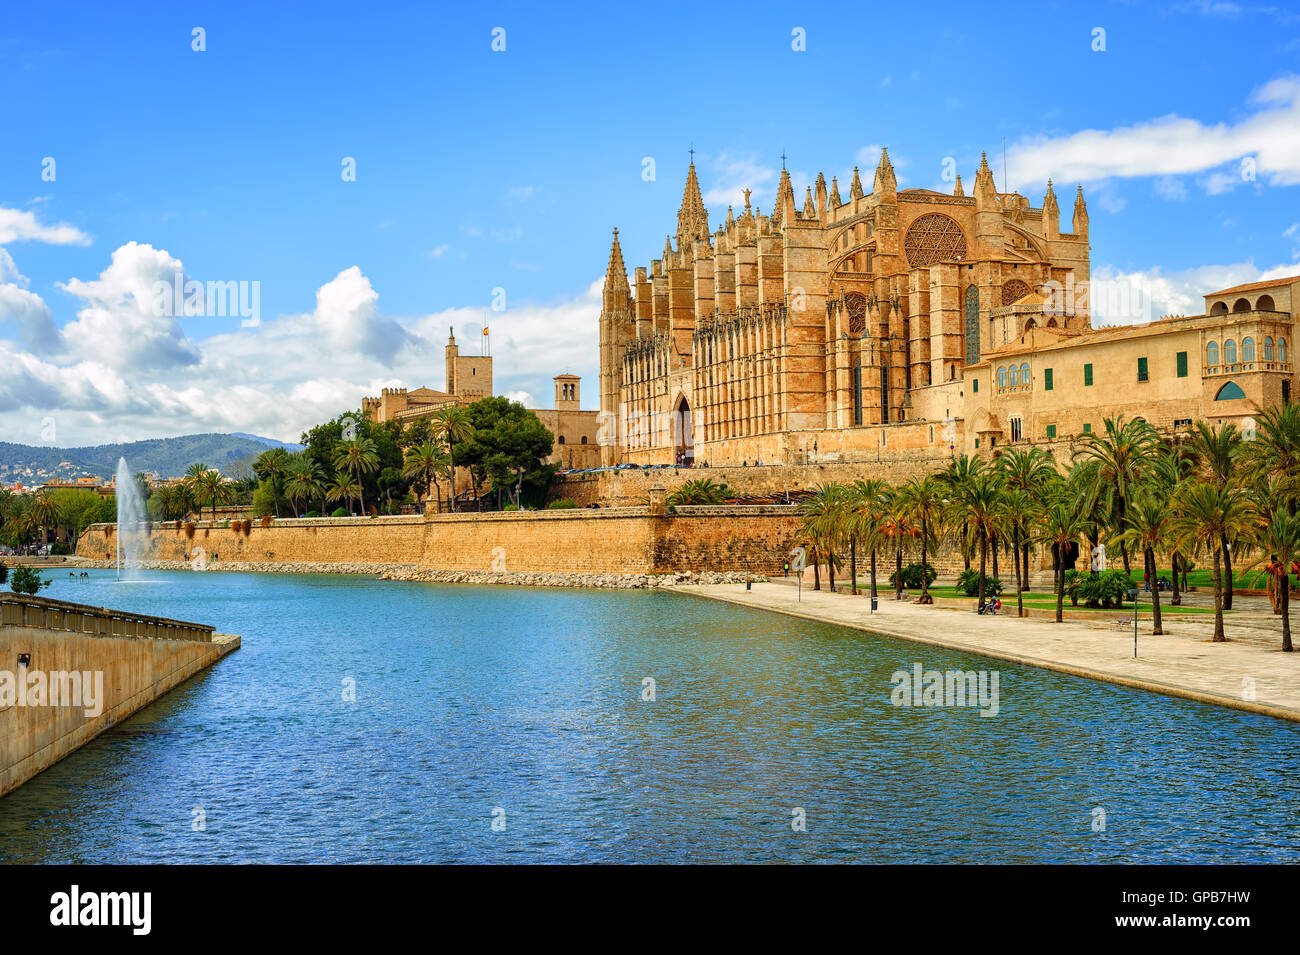 La Seu, the gothic medieval cathedral of Palma de Mallorca, Spain - Stock Image